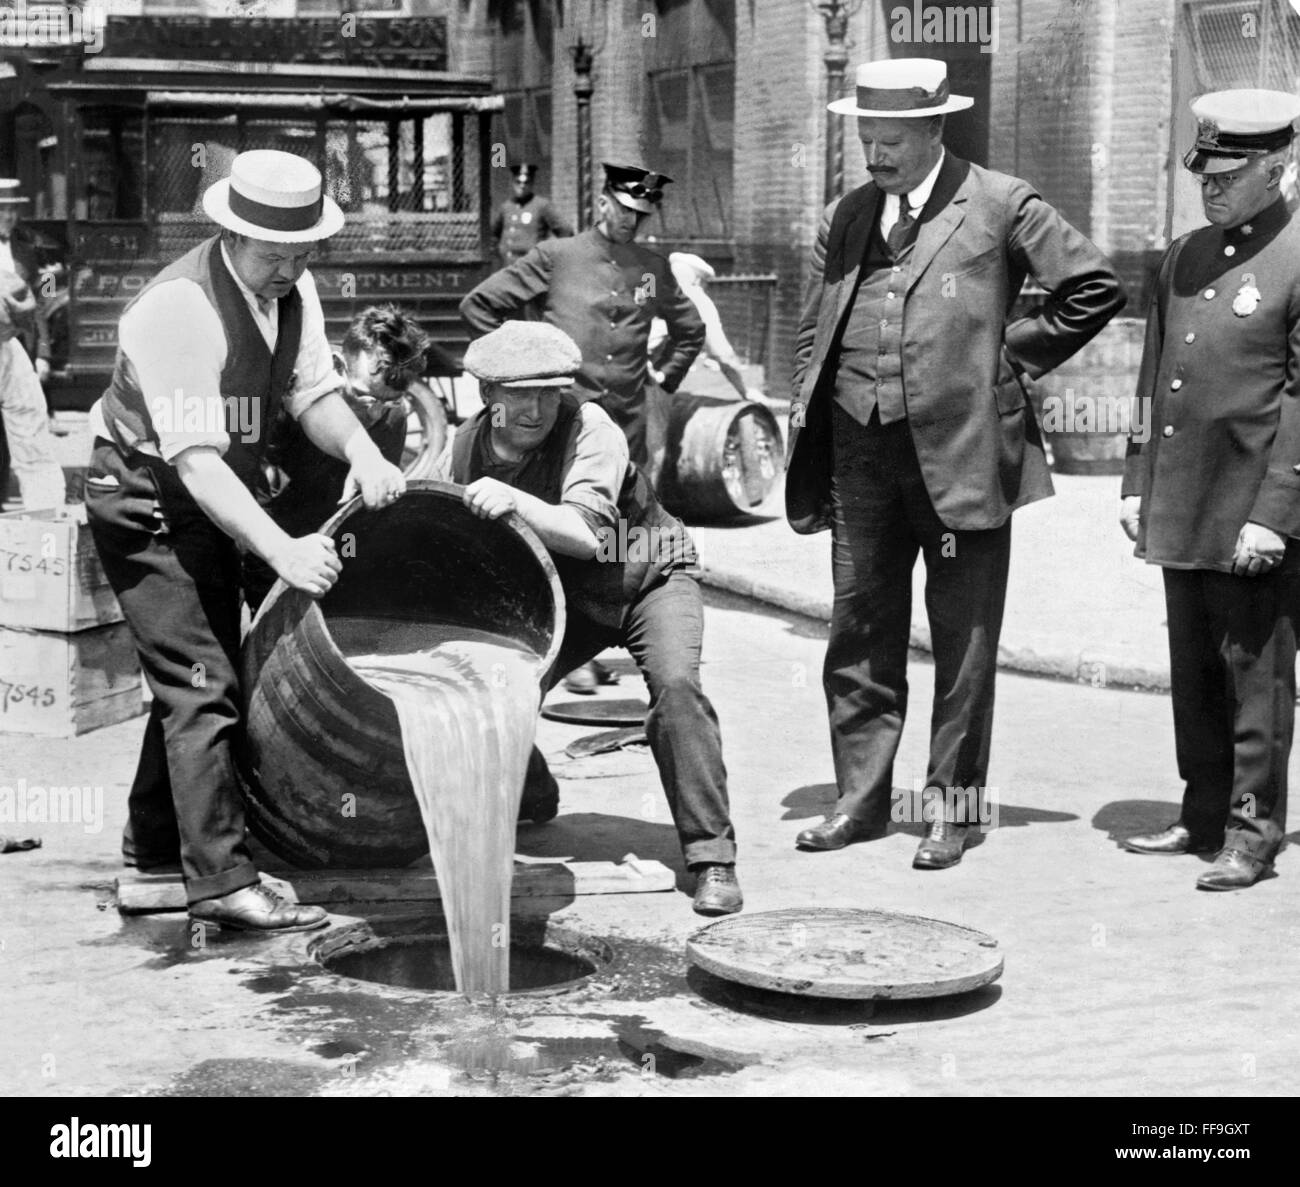 Prohibition 1920s. Agents pouring liquor into sewer following a raid during probibition, New York City, NY, USA. - Stock Image